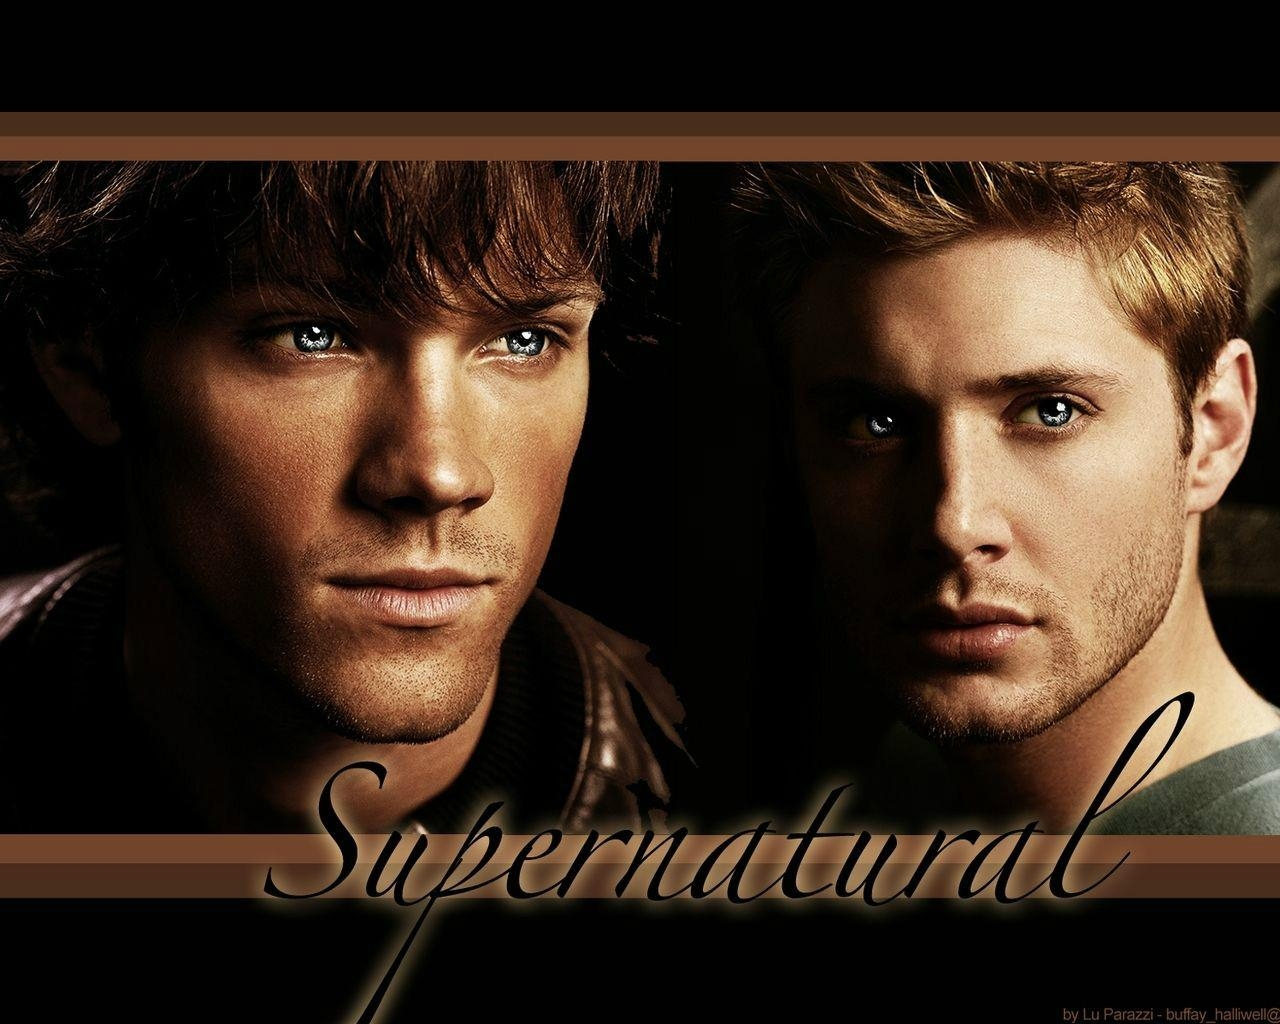 High Quality Supernatural Wall Art Promotion Shop For High Quality With Supernatural Wall Art (Image 13 of 20)